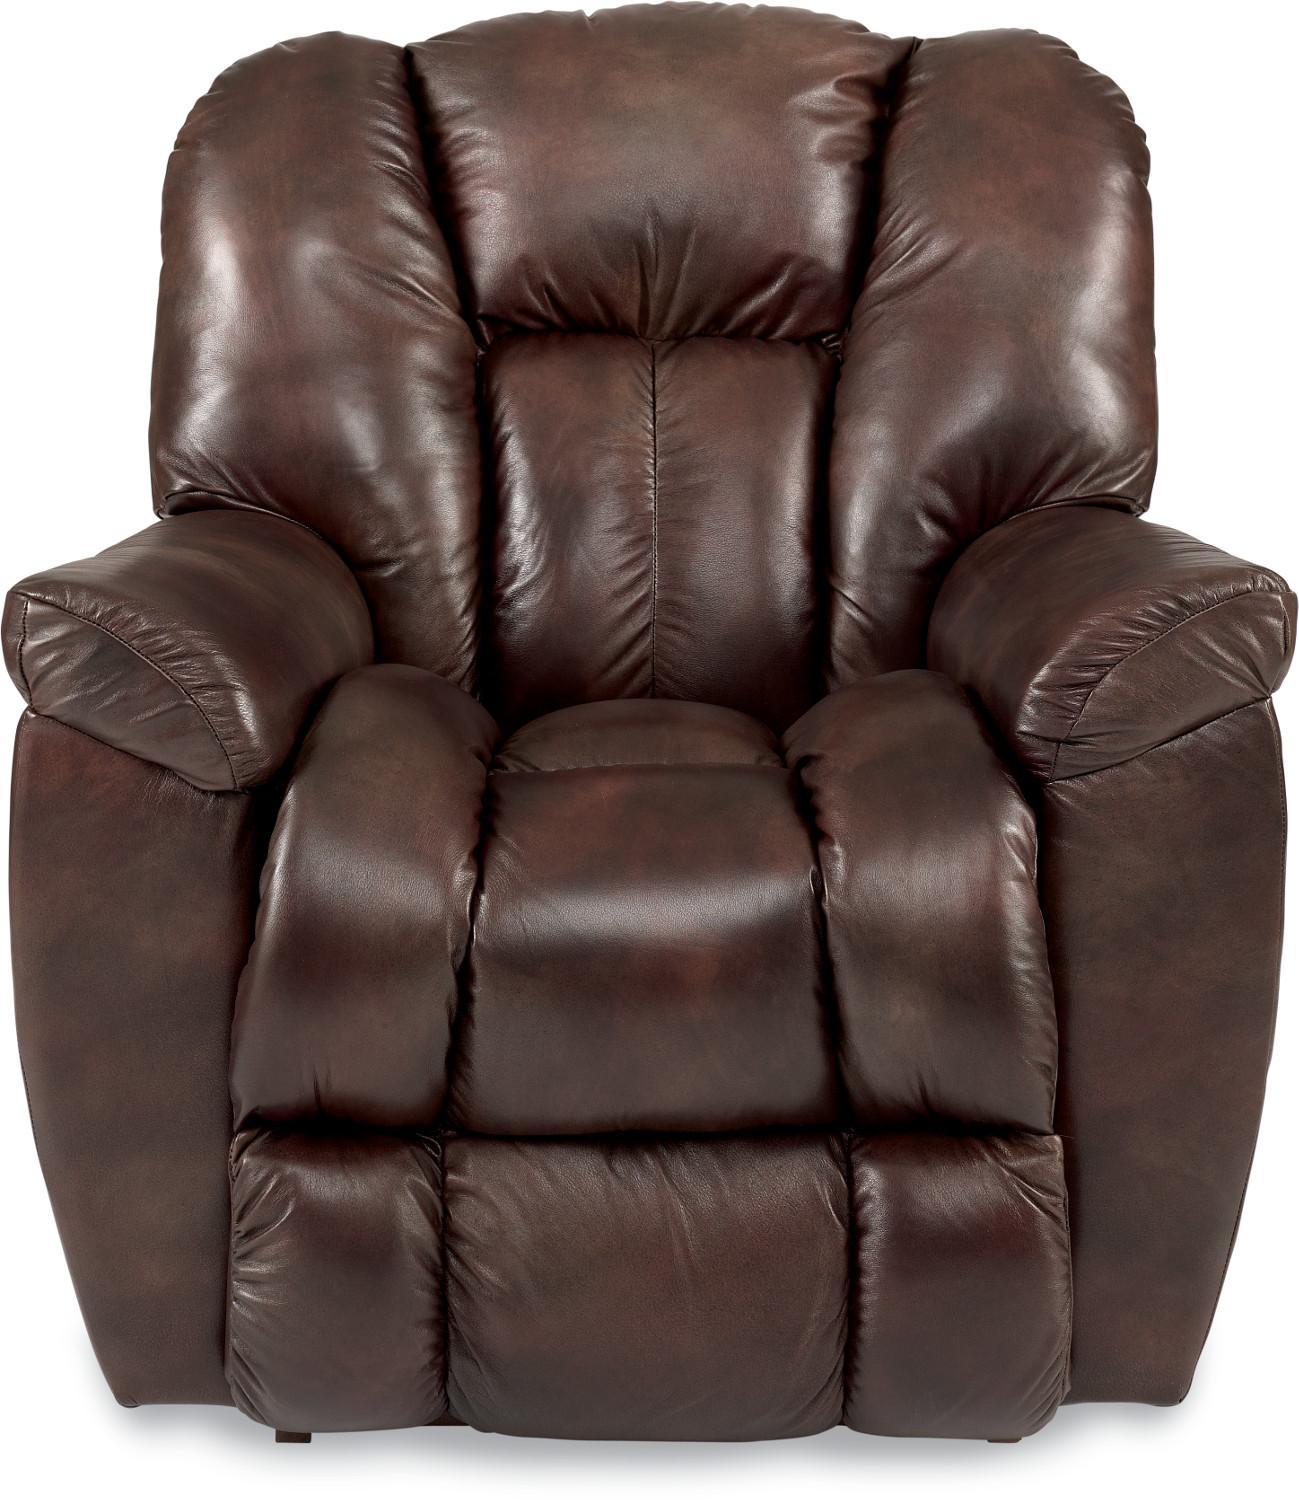 Maverick Rocker Recliner by La-Z-Boy at Pedigo Furniture